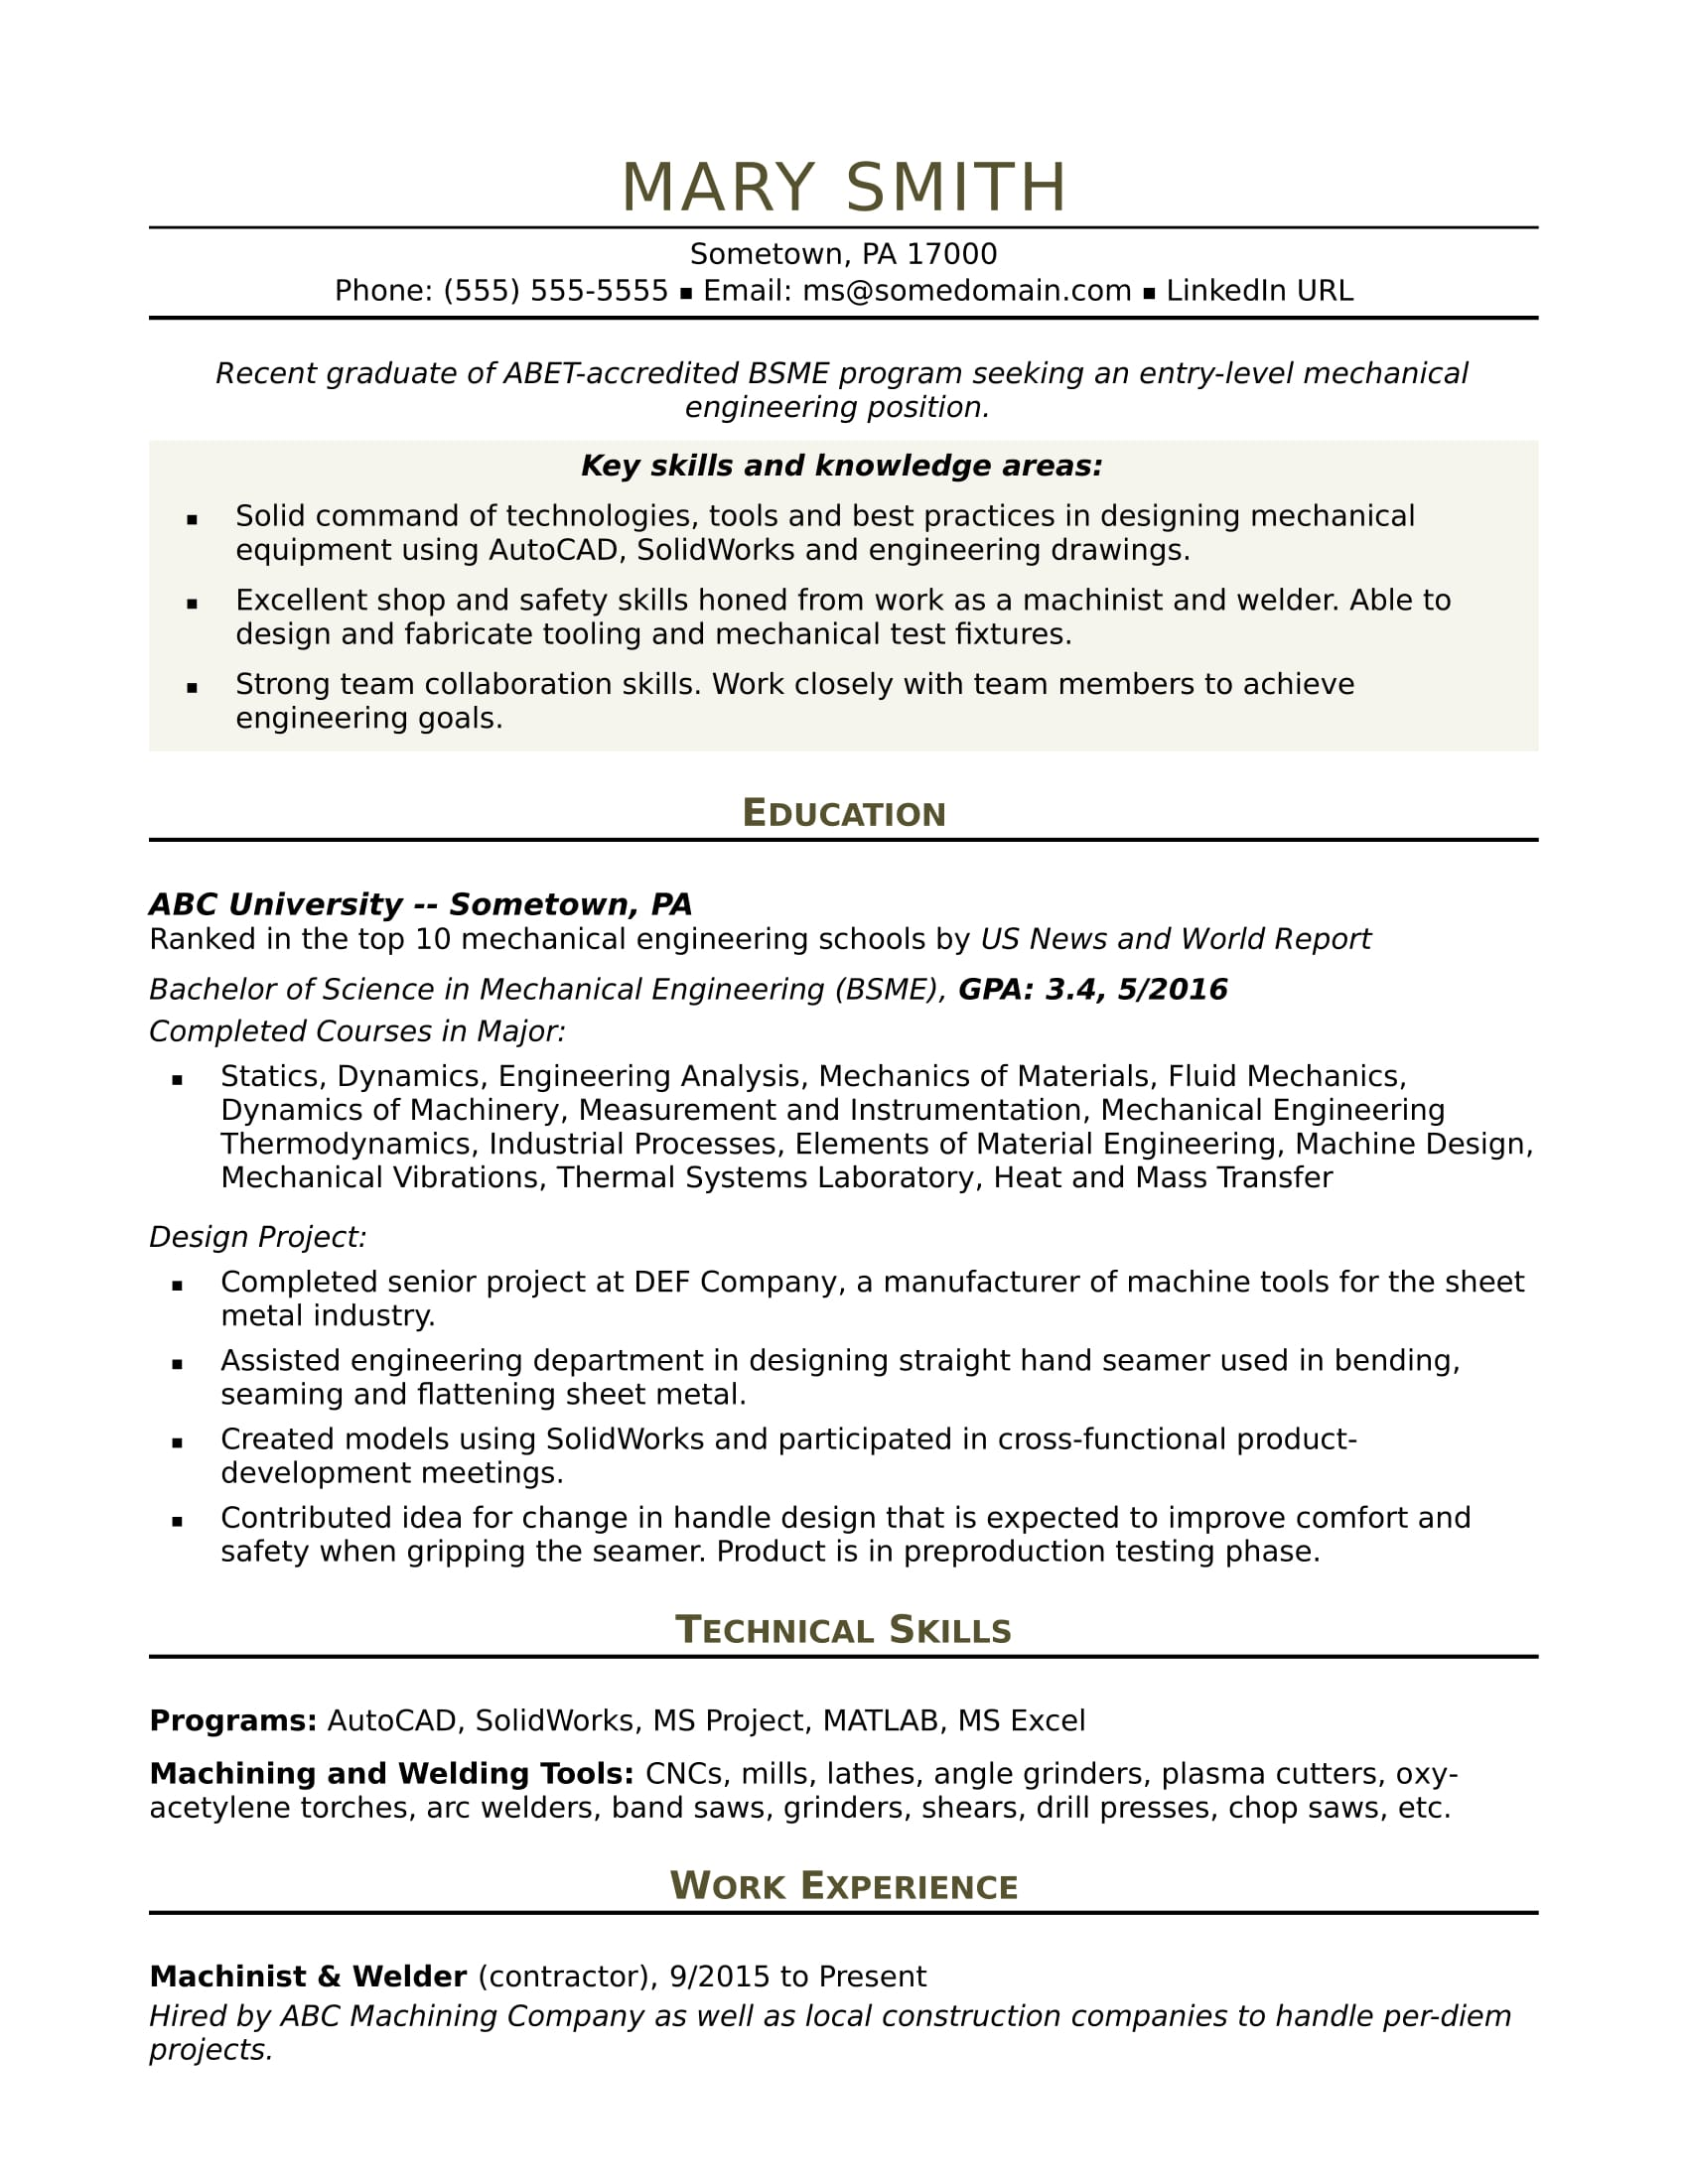 Sample Resume For An Entry Level Mechanical Engineer Ideas Engineer Resume